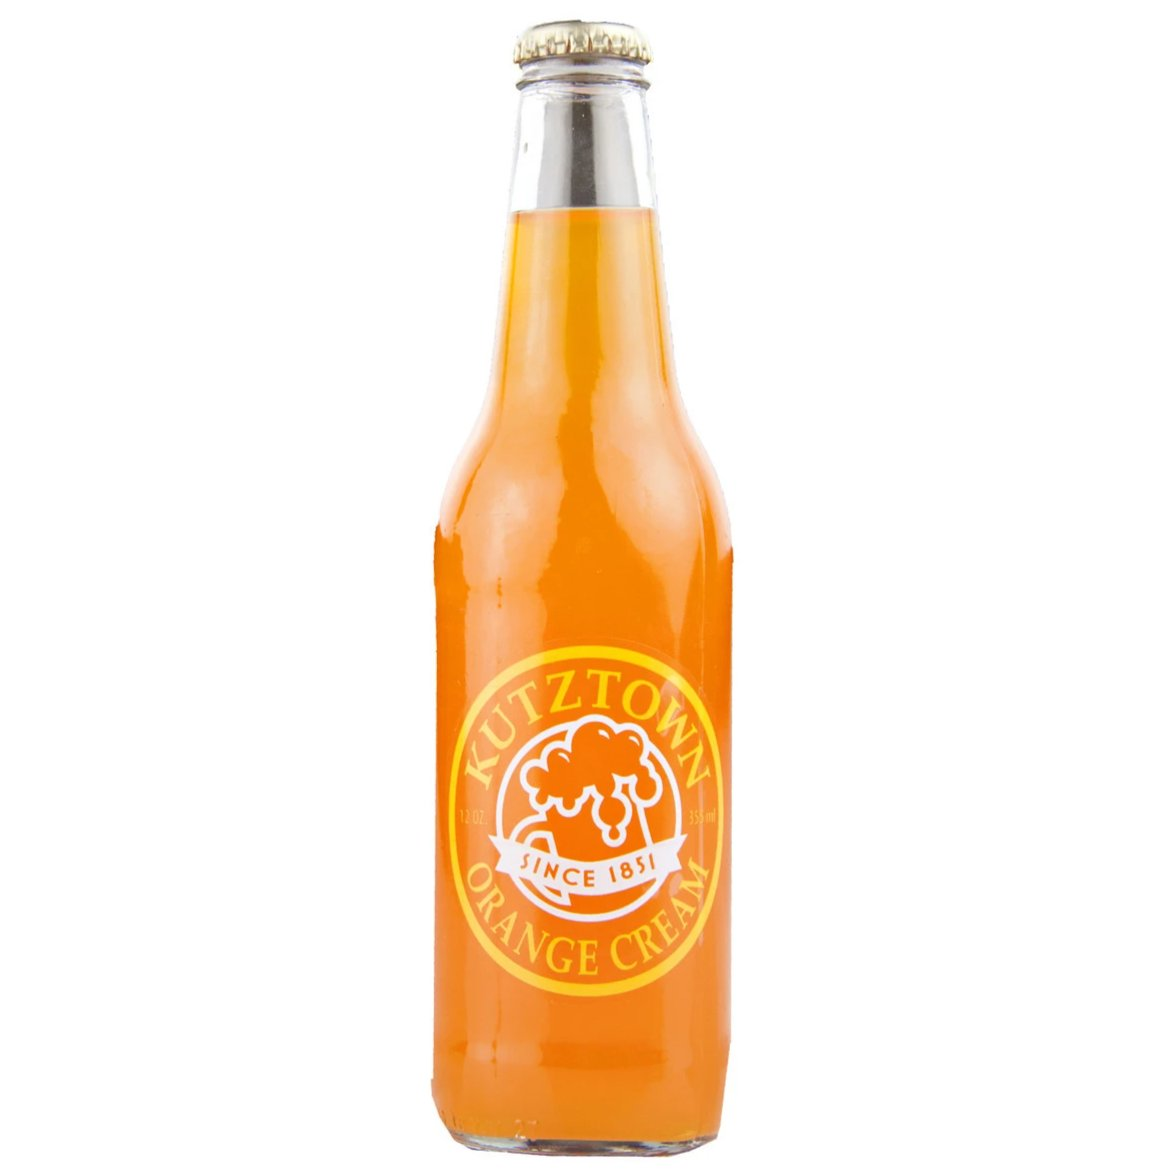 Kutztown Orange Cream - 12 oz (12 Glass Bottles)